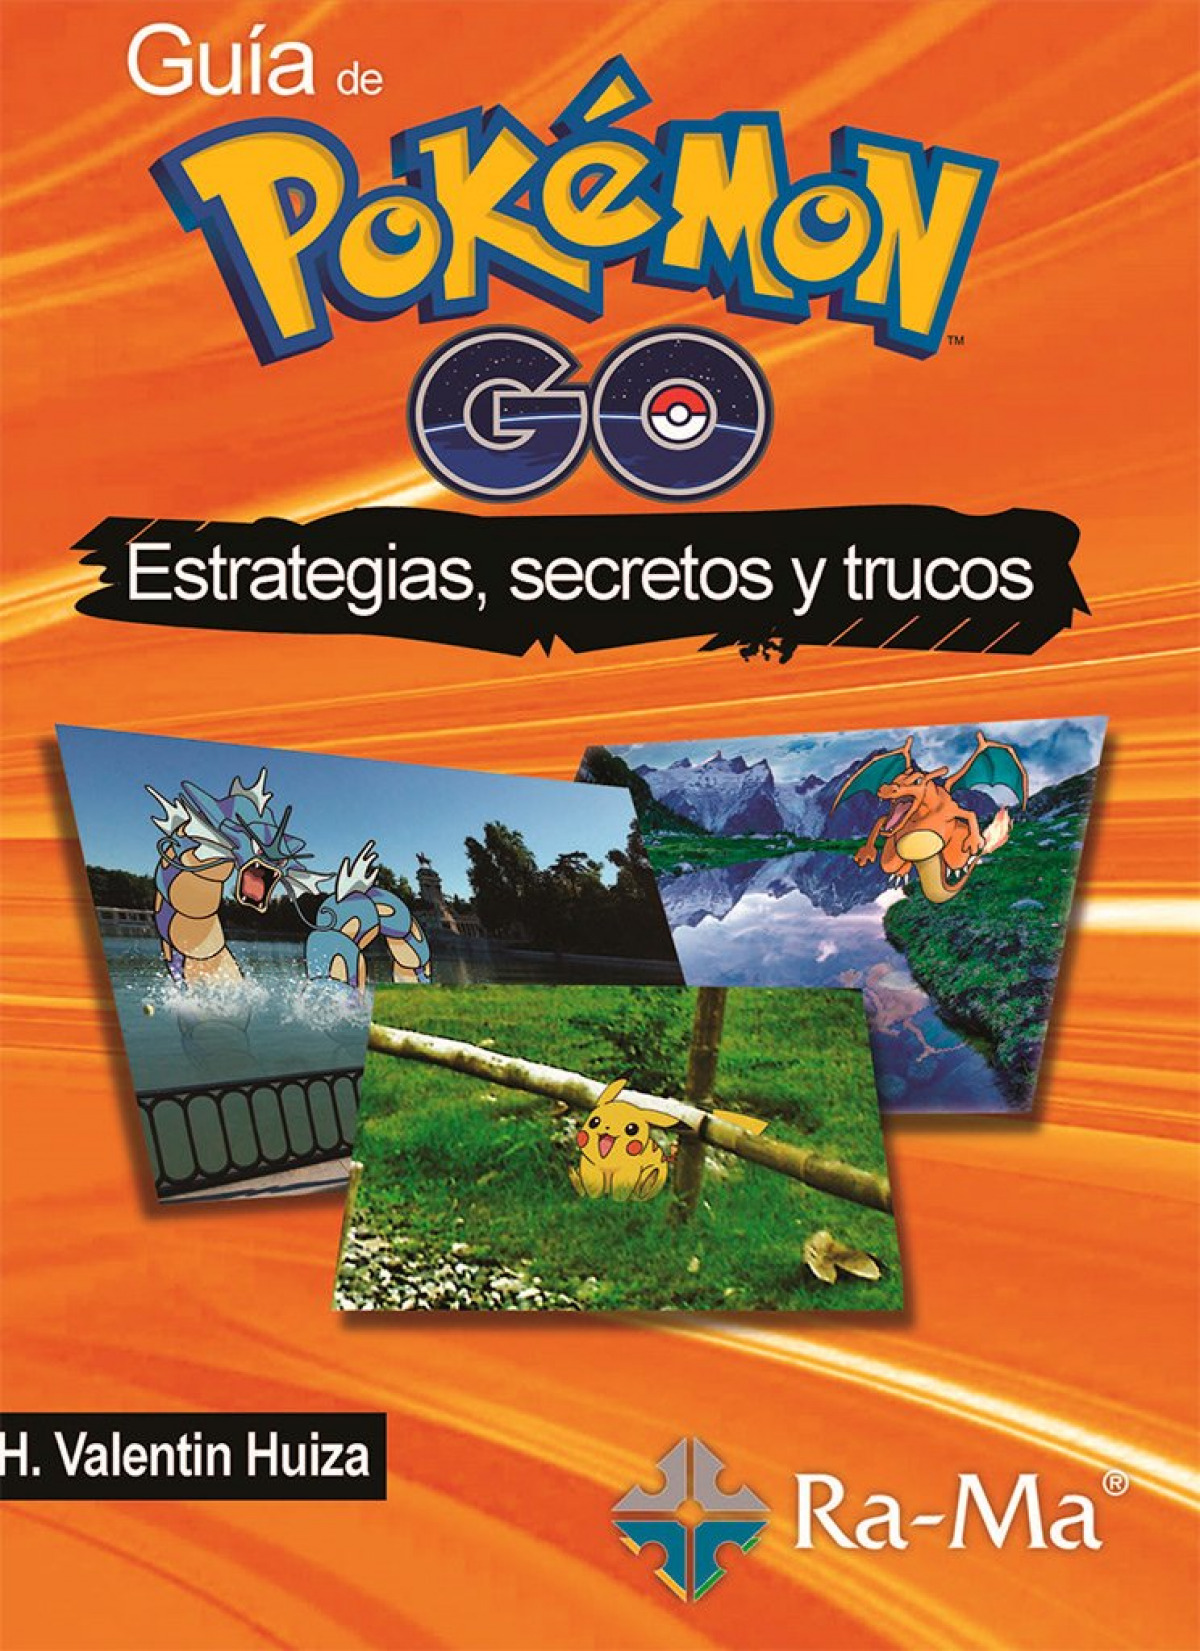 Guía de pokemon go 9788499646701